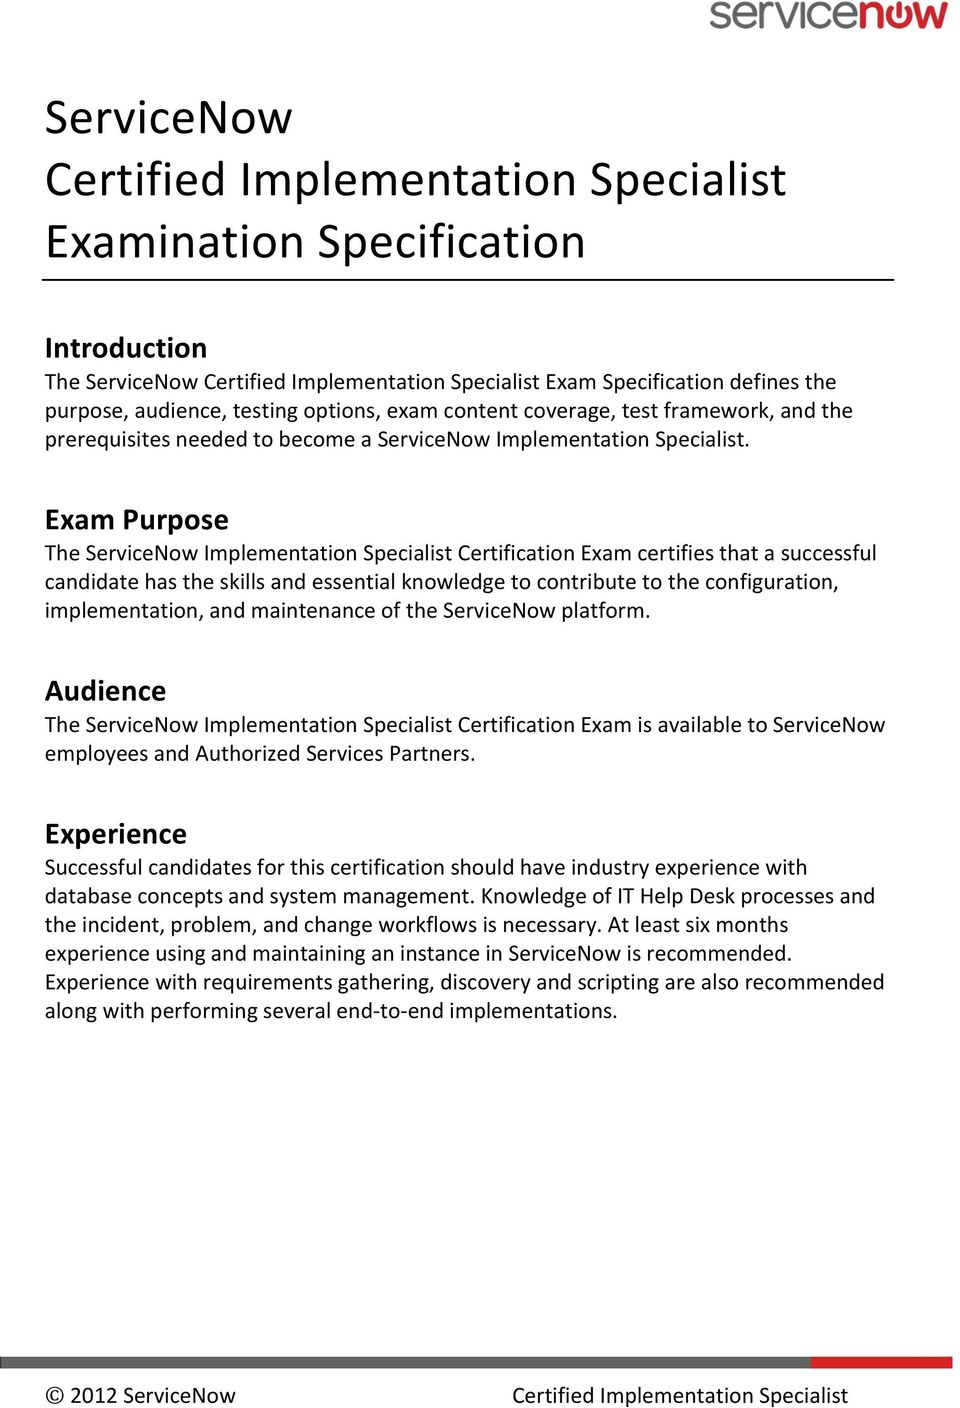 ServiceNow Certified Implementation Specialist Examination